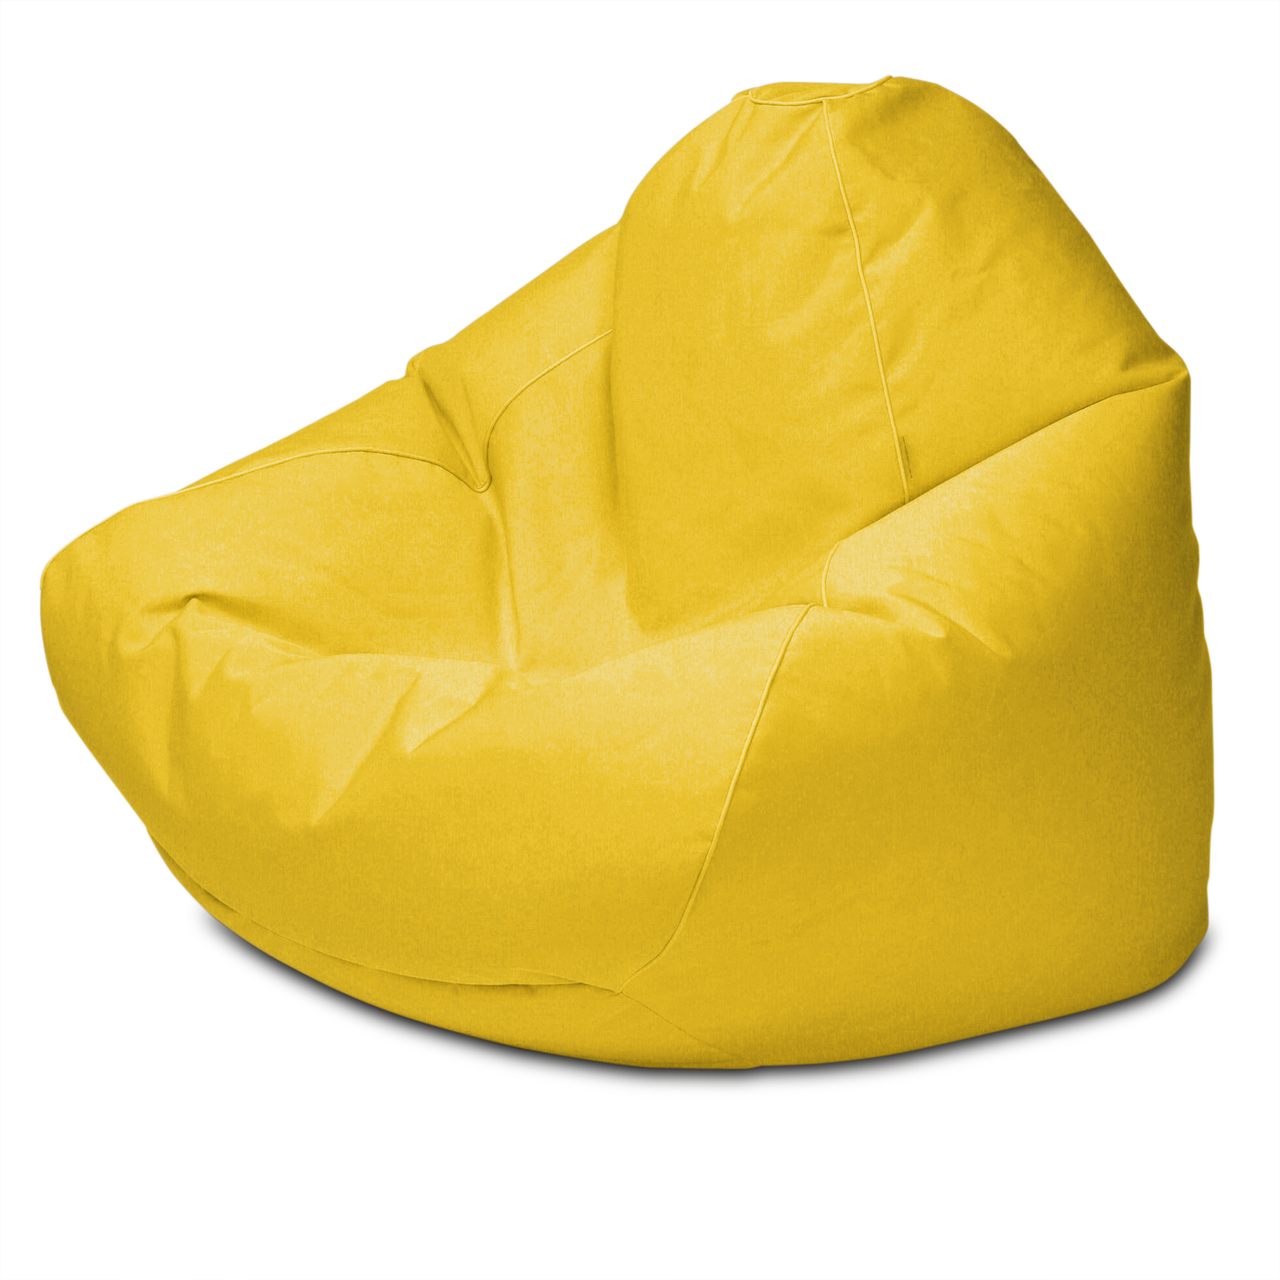 Sunbrella Outdoor Queen Size Bean Bag in yellow